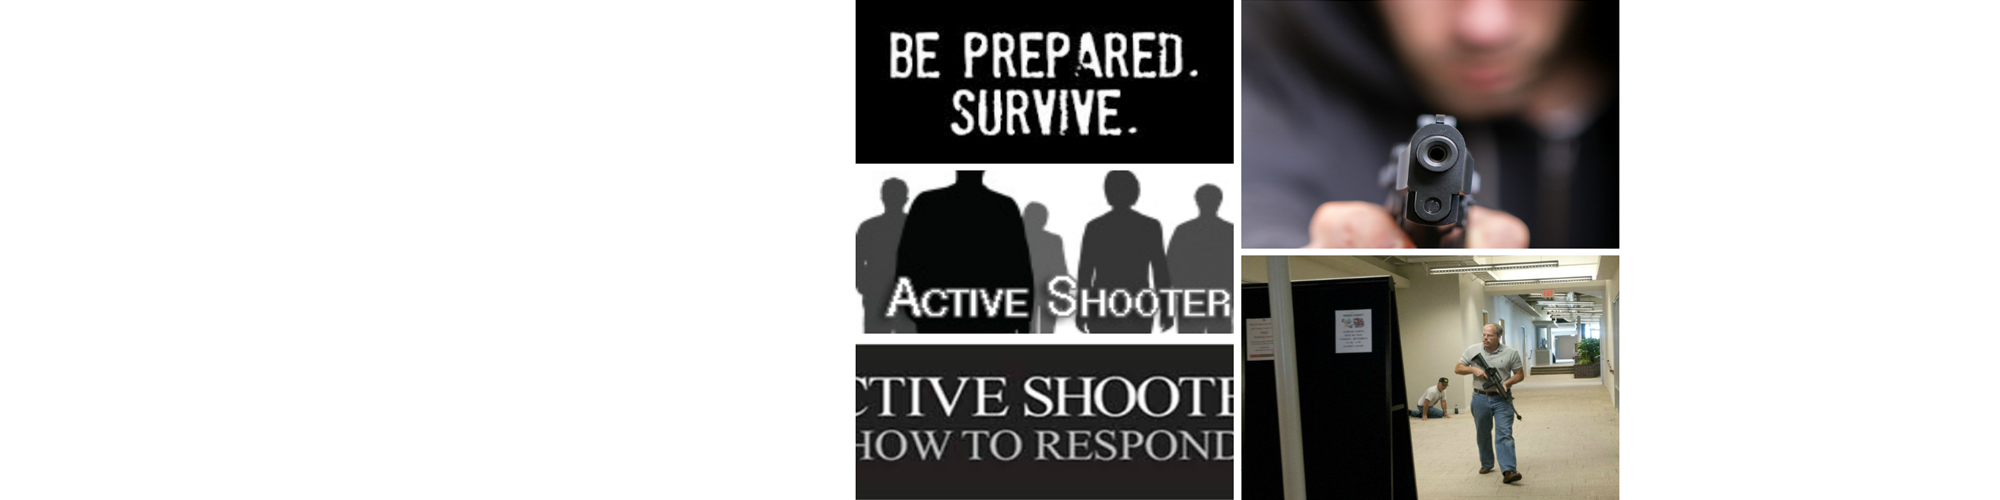 RedHawk Active Shooter Response Courses